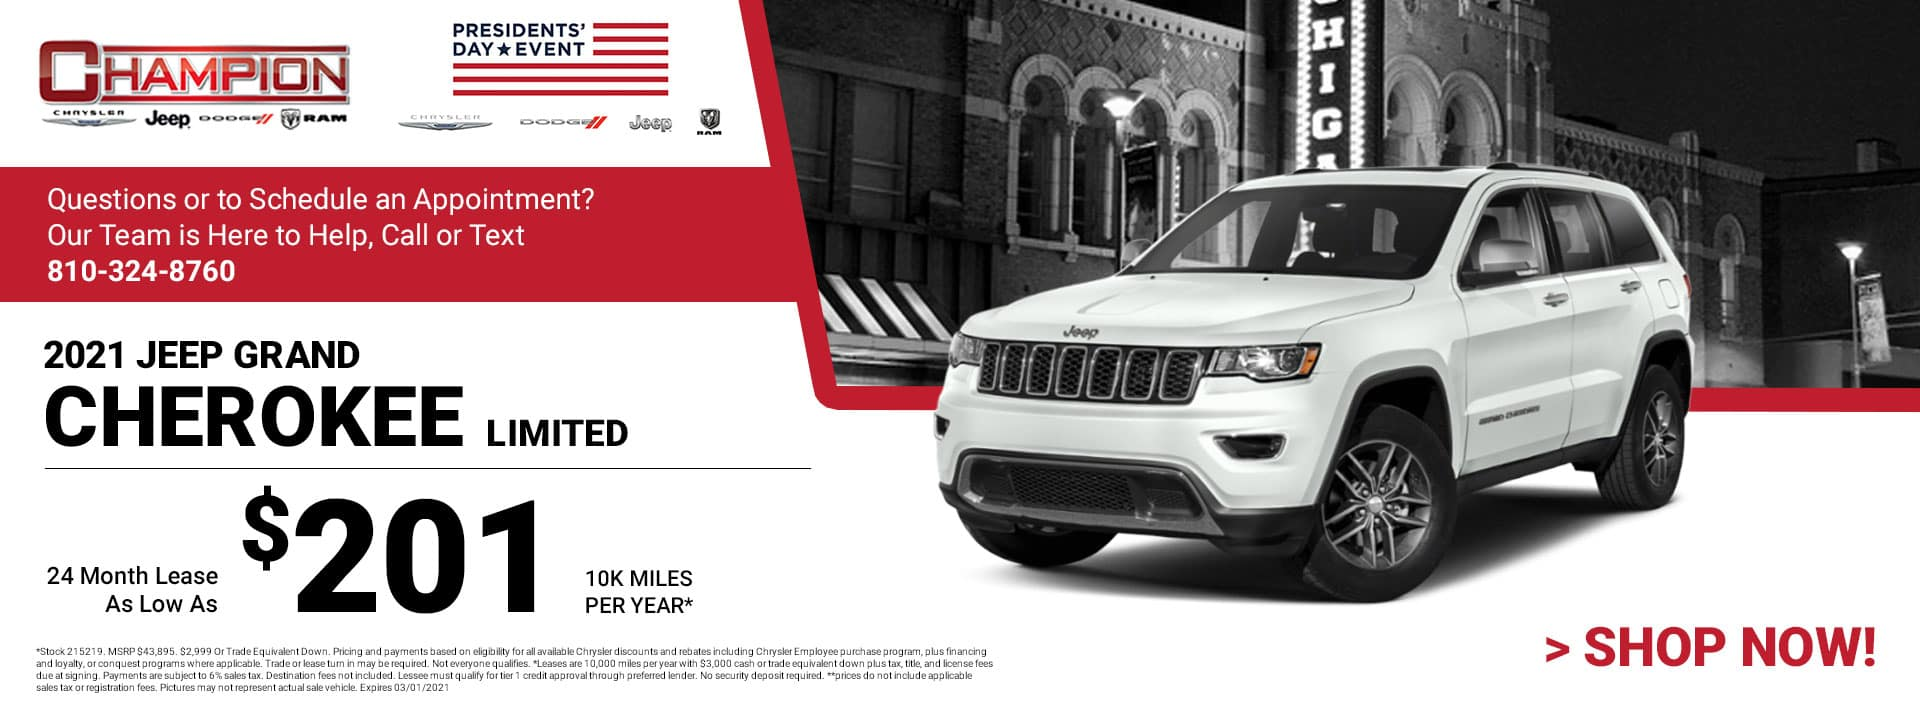 2021 Jeep Grand Cherokee Limited - Lease